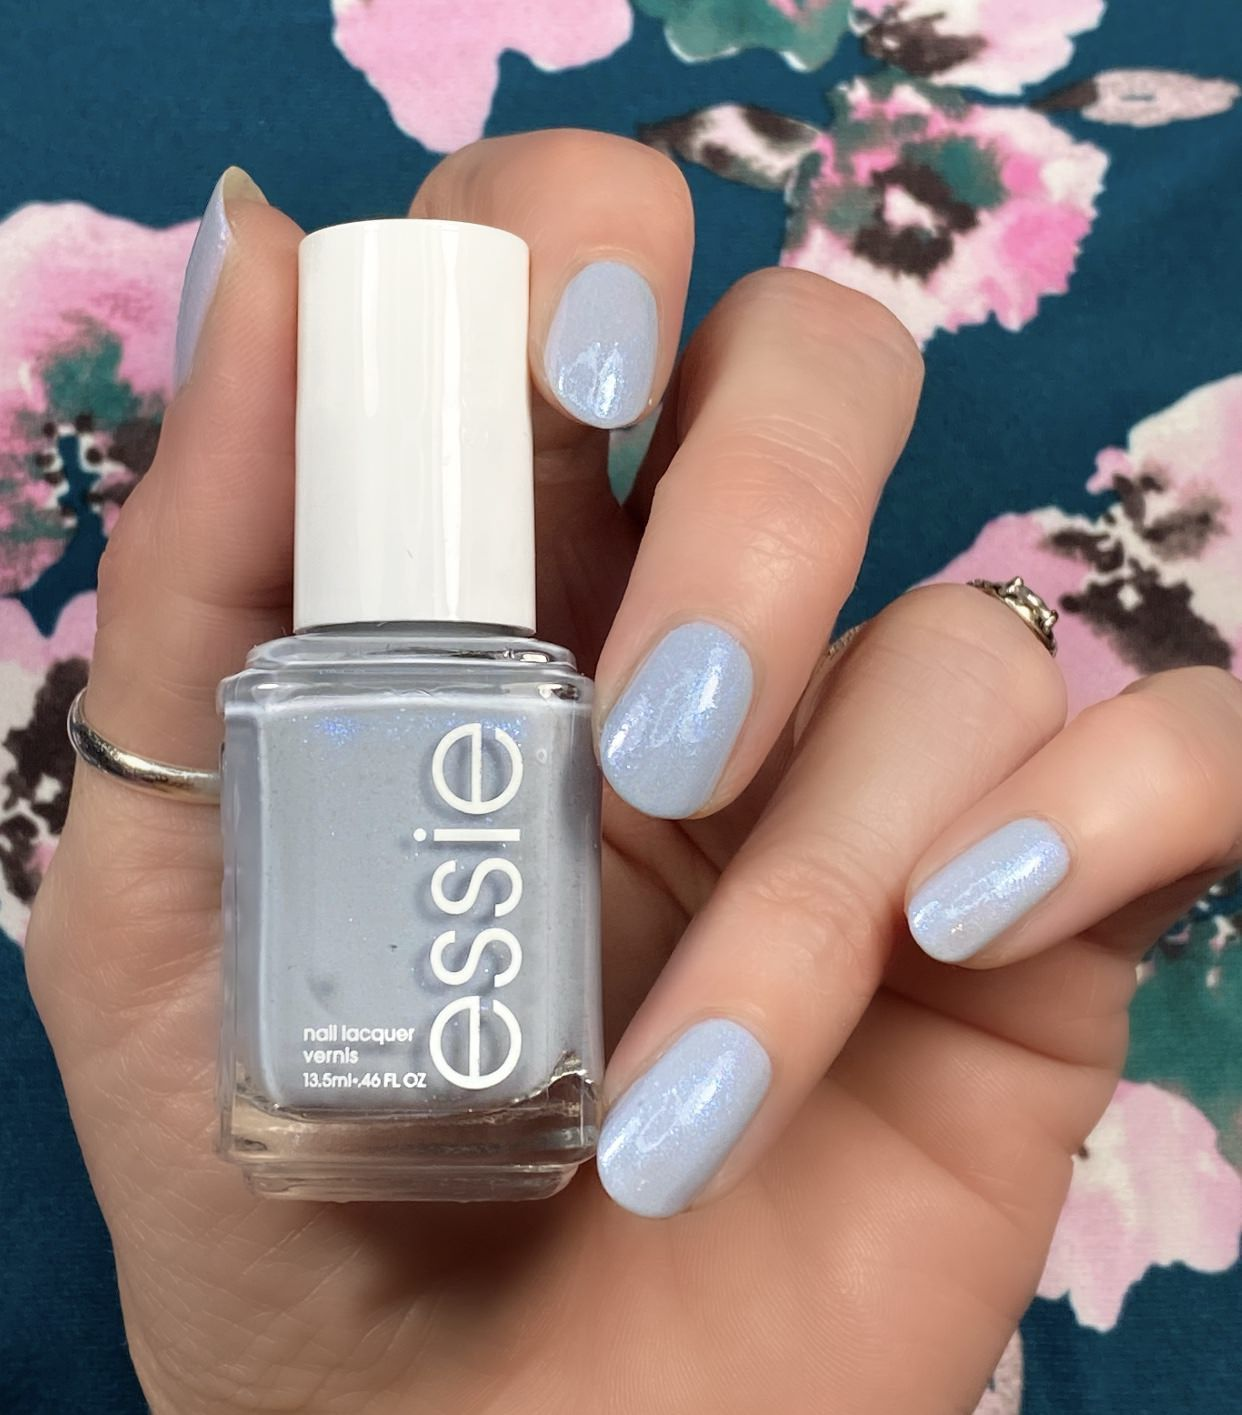 Essie Spring 2020 In 2020 With Images Nail Polish Essie Blue